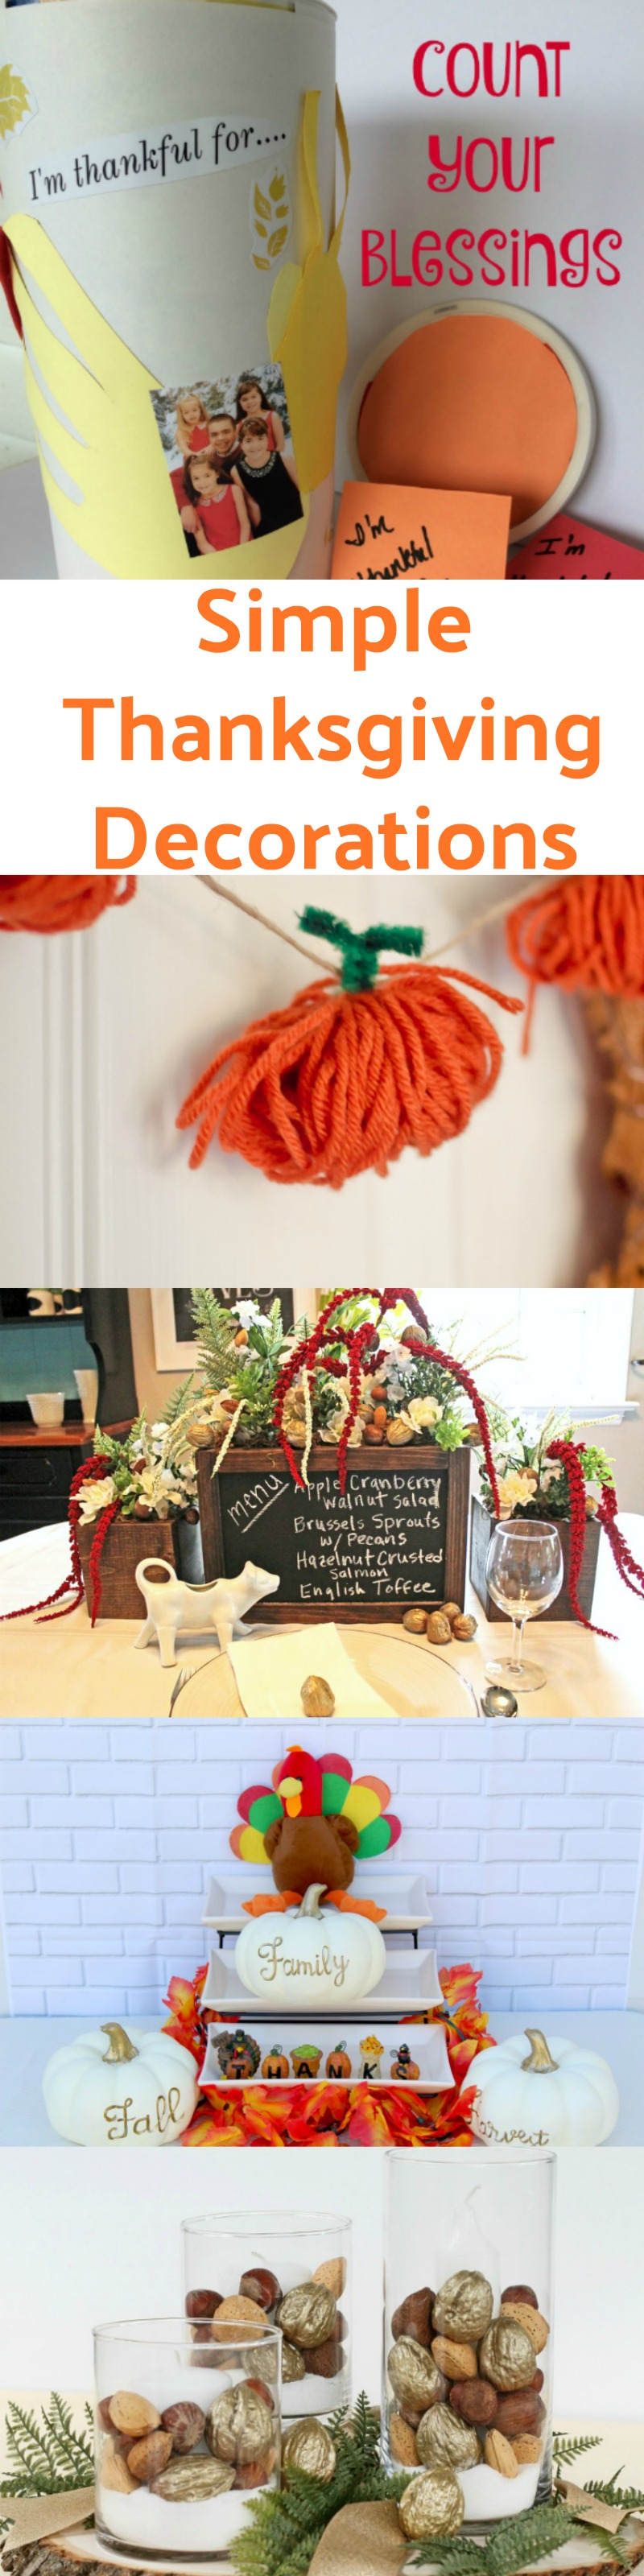 These Simple Thanksgiving Decorations will liven up your table without taking you a lot of time, perfect for the busy holiday season!